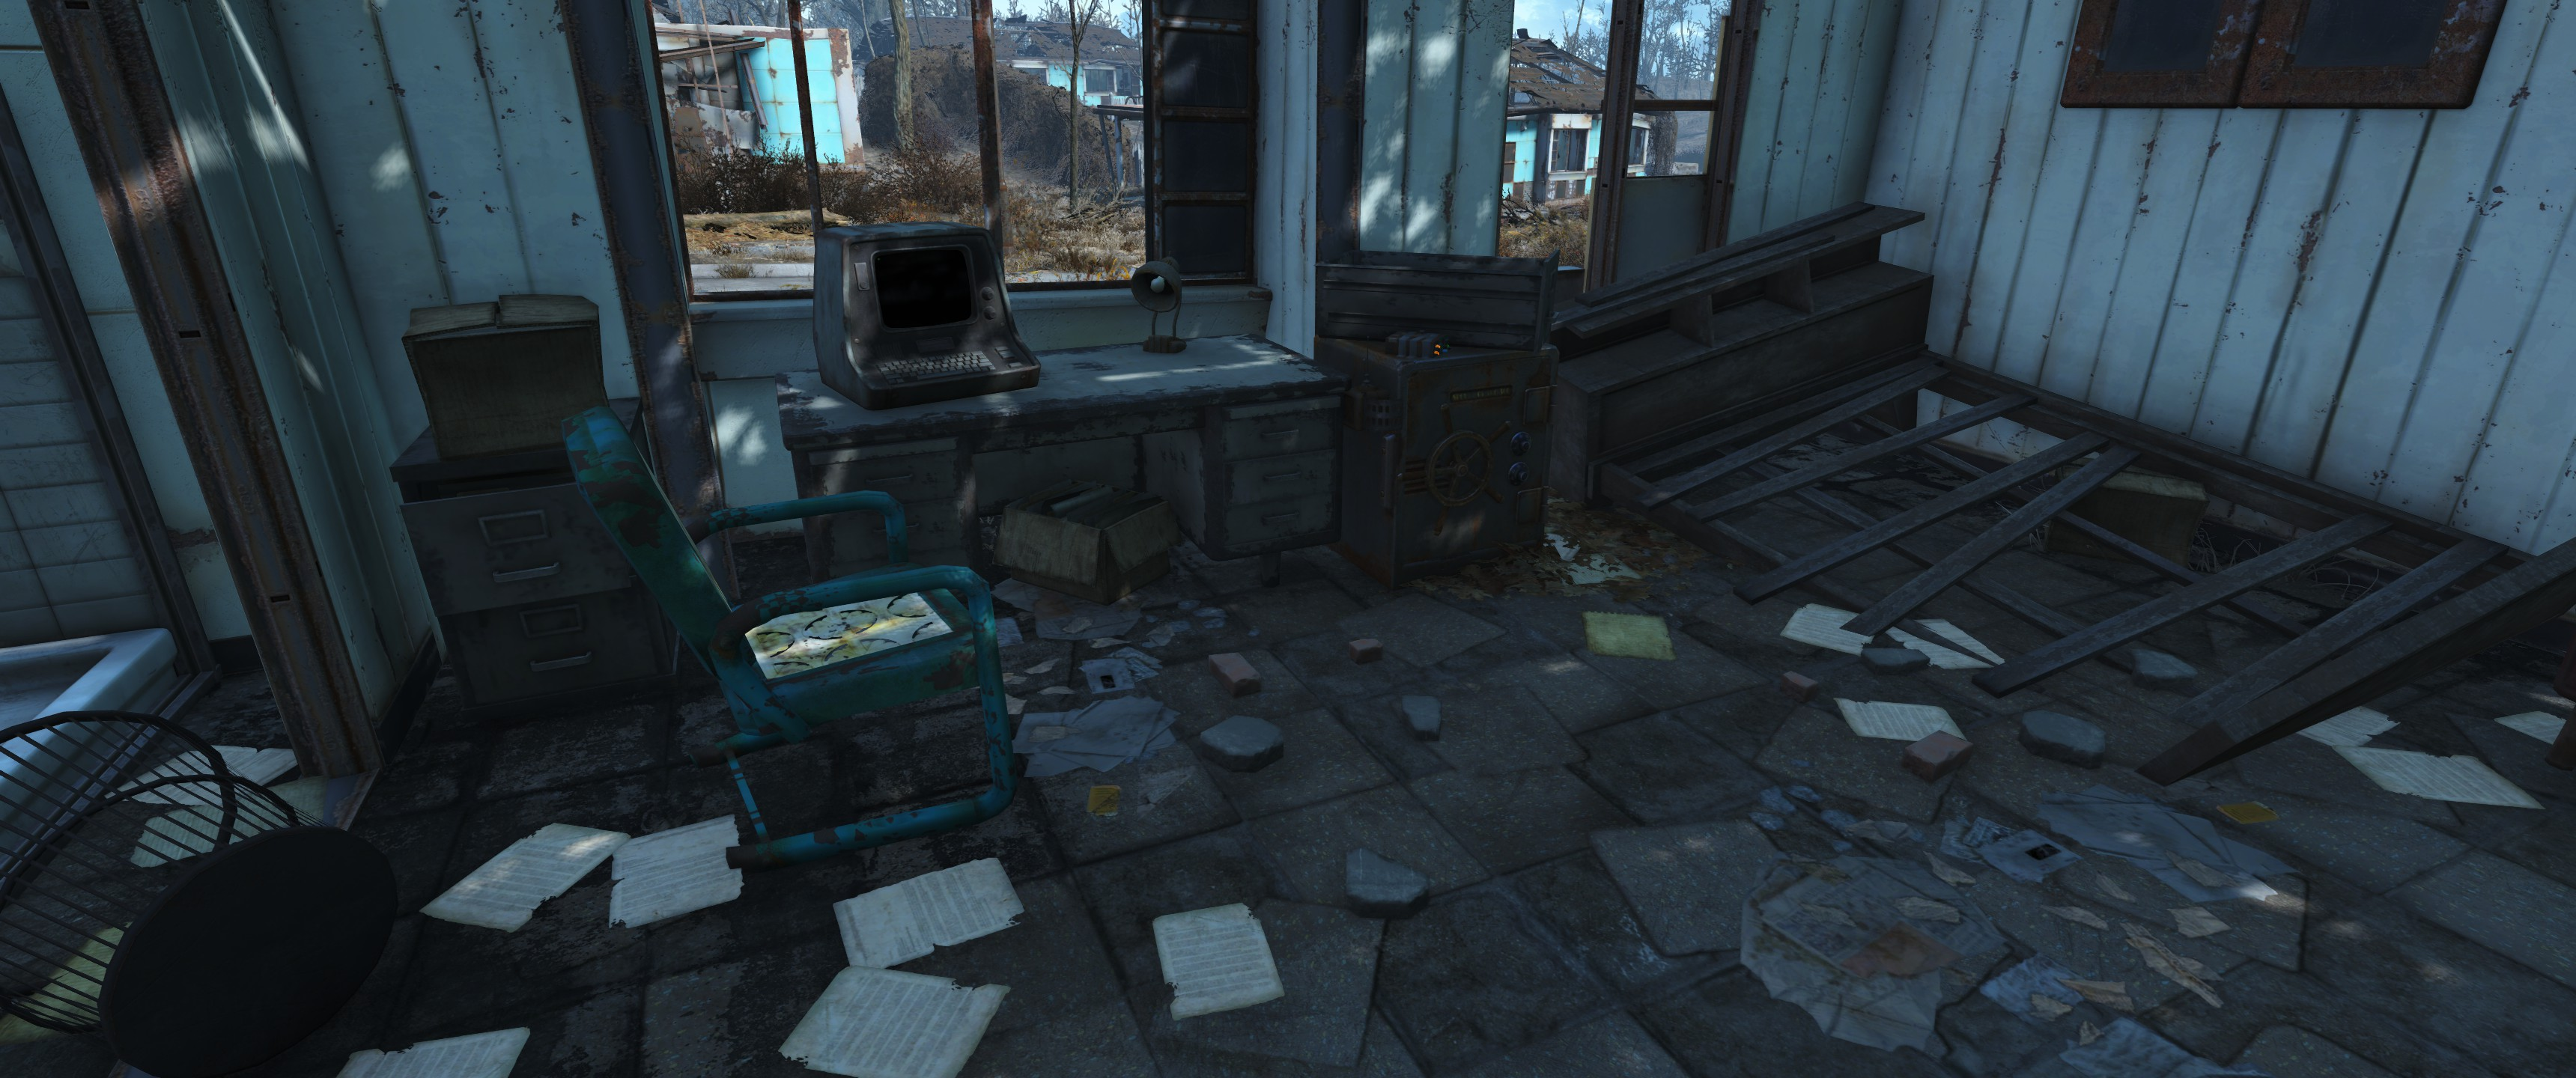 FO4 Santuary Chem dealer terminal and Safe